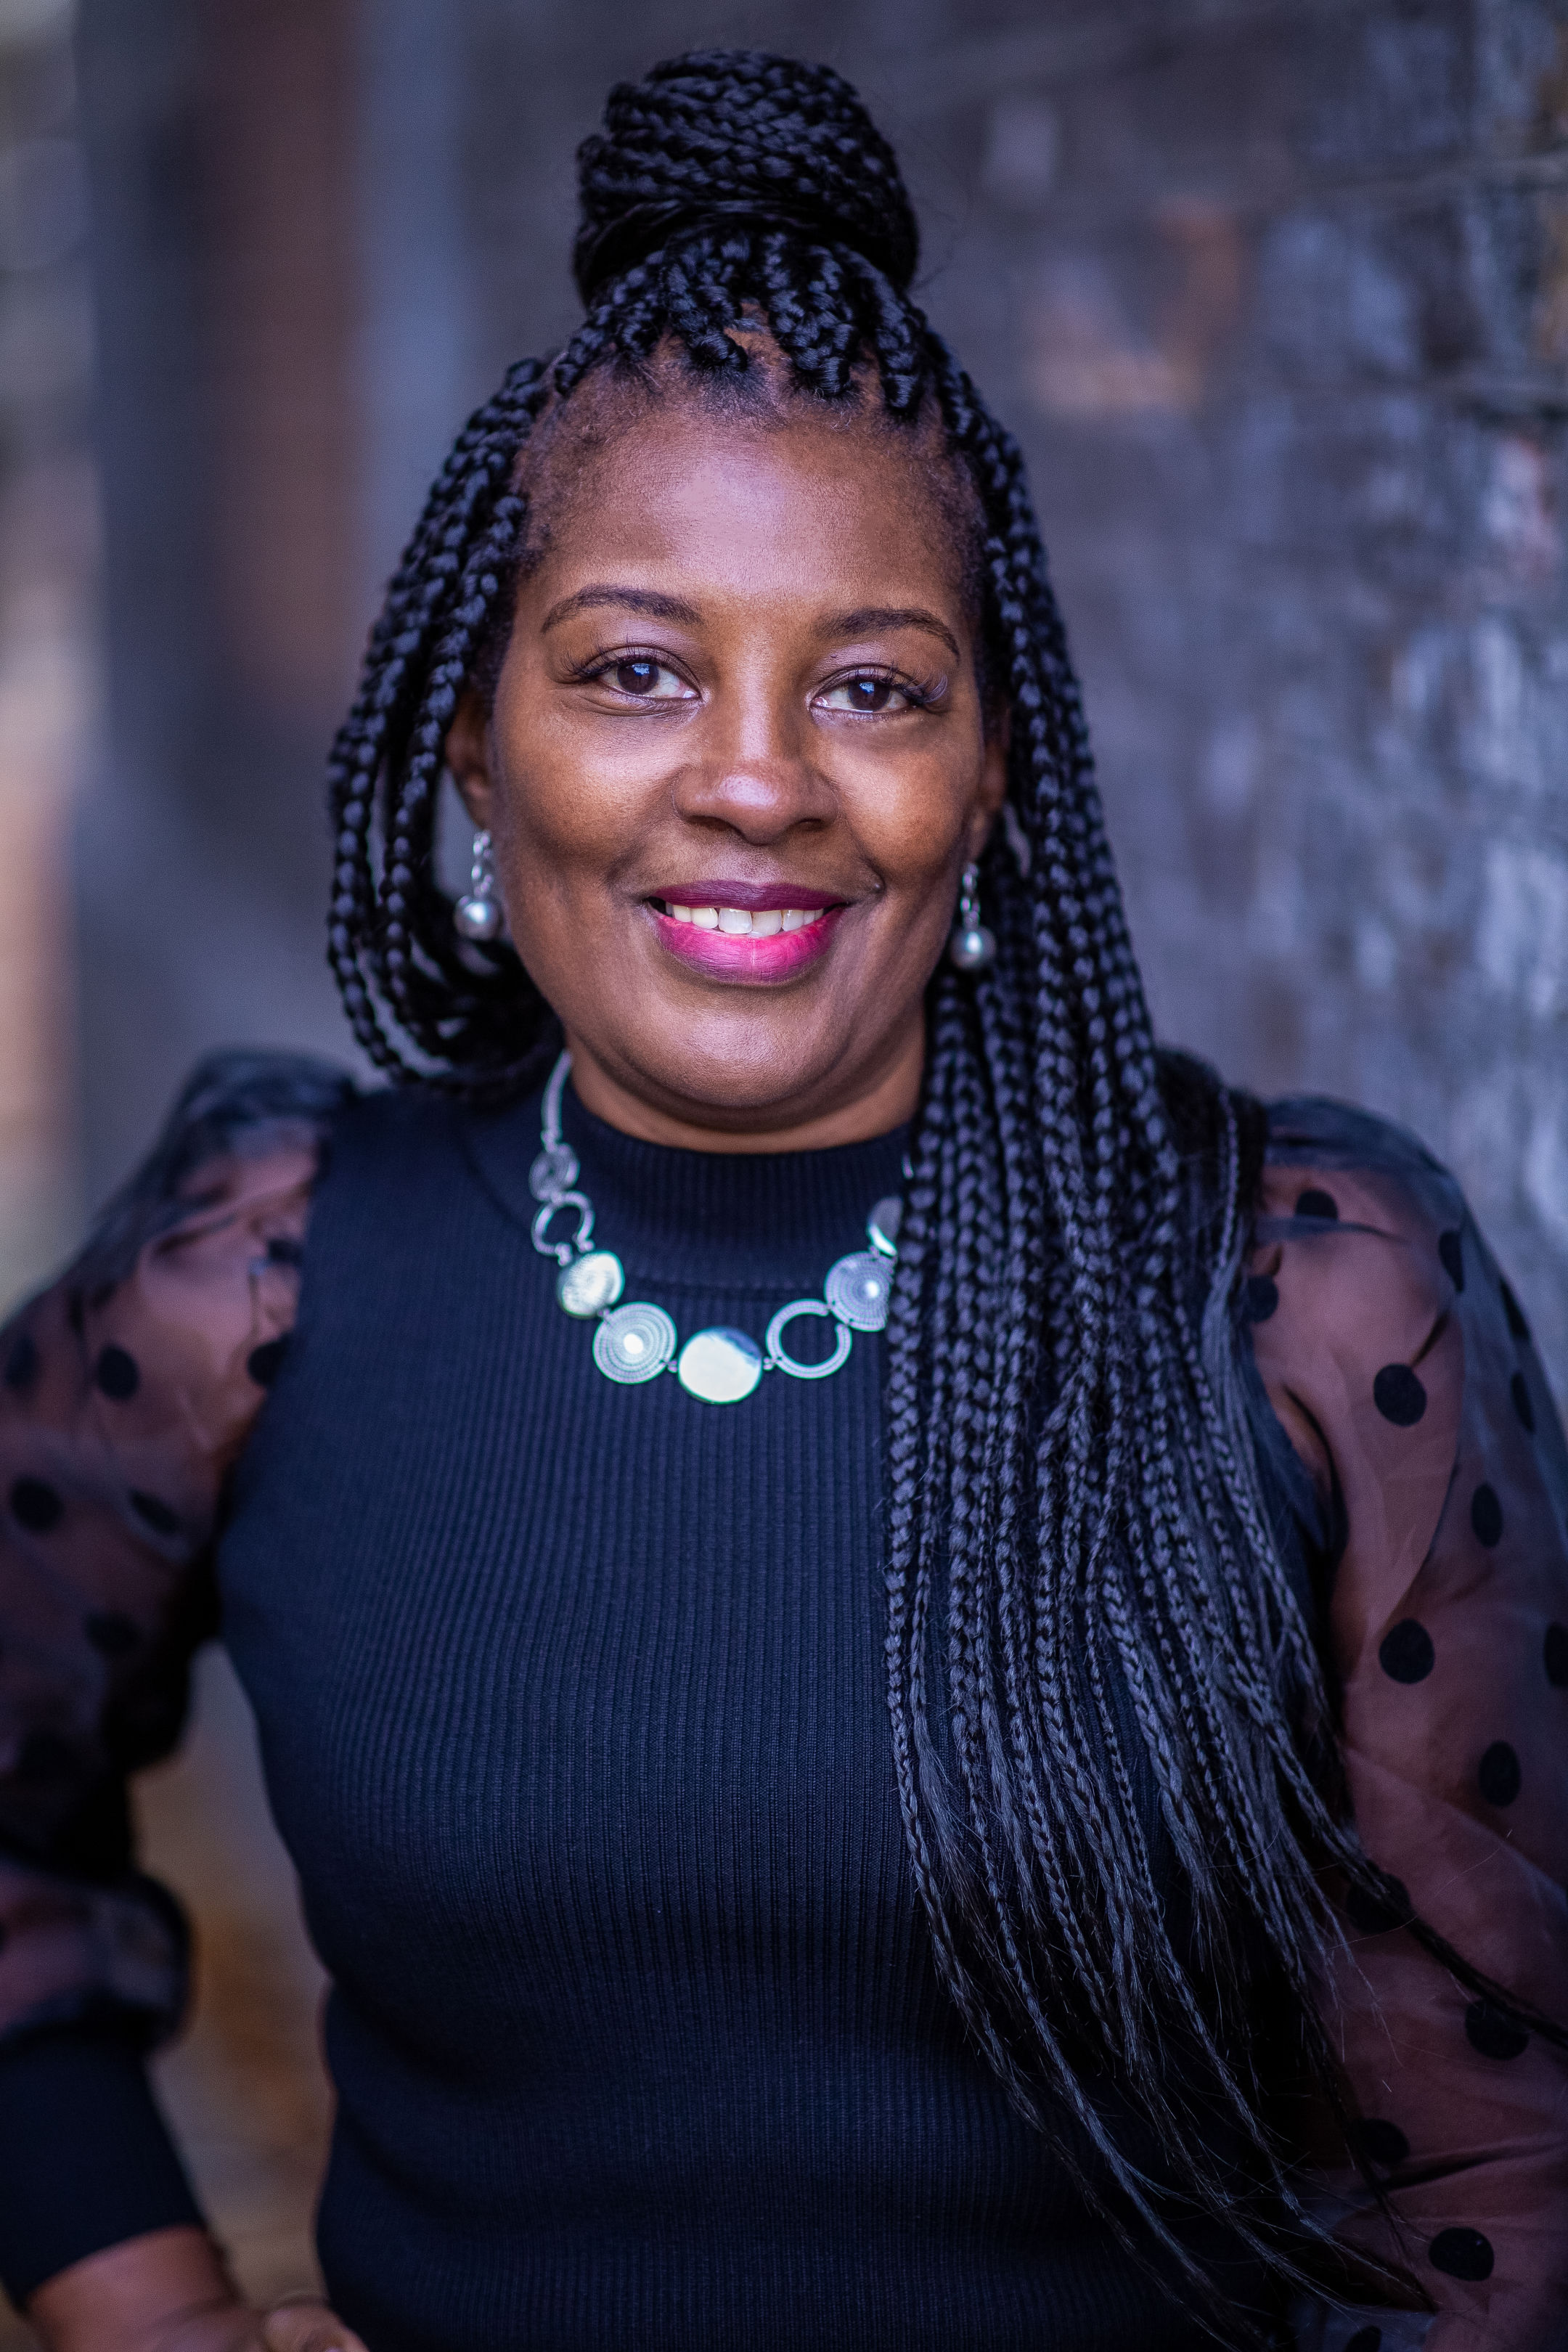 A photo of the author Venessa Taylor